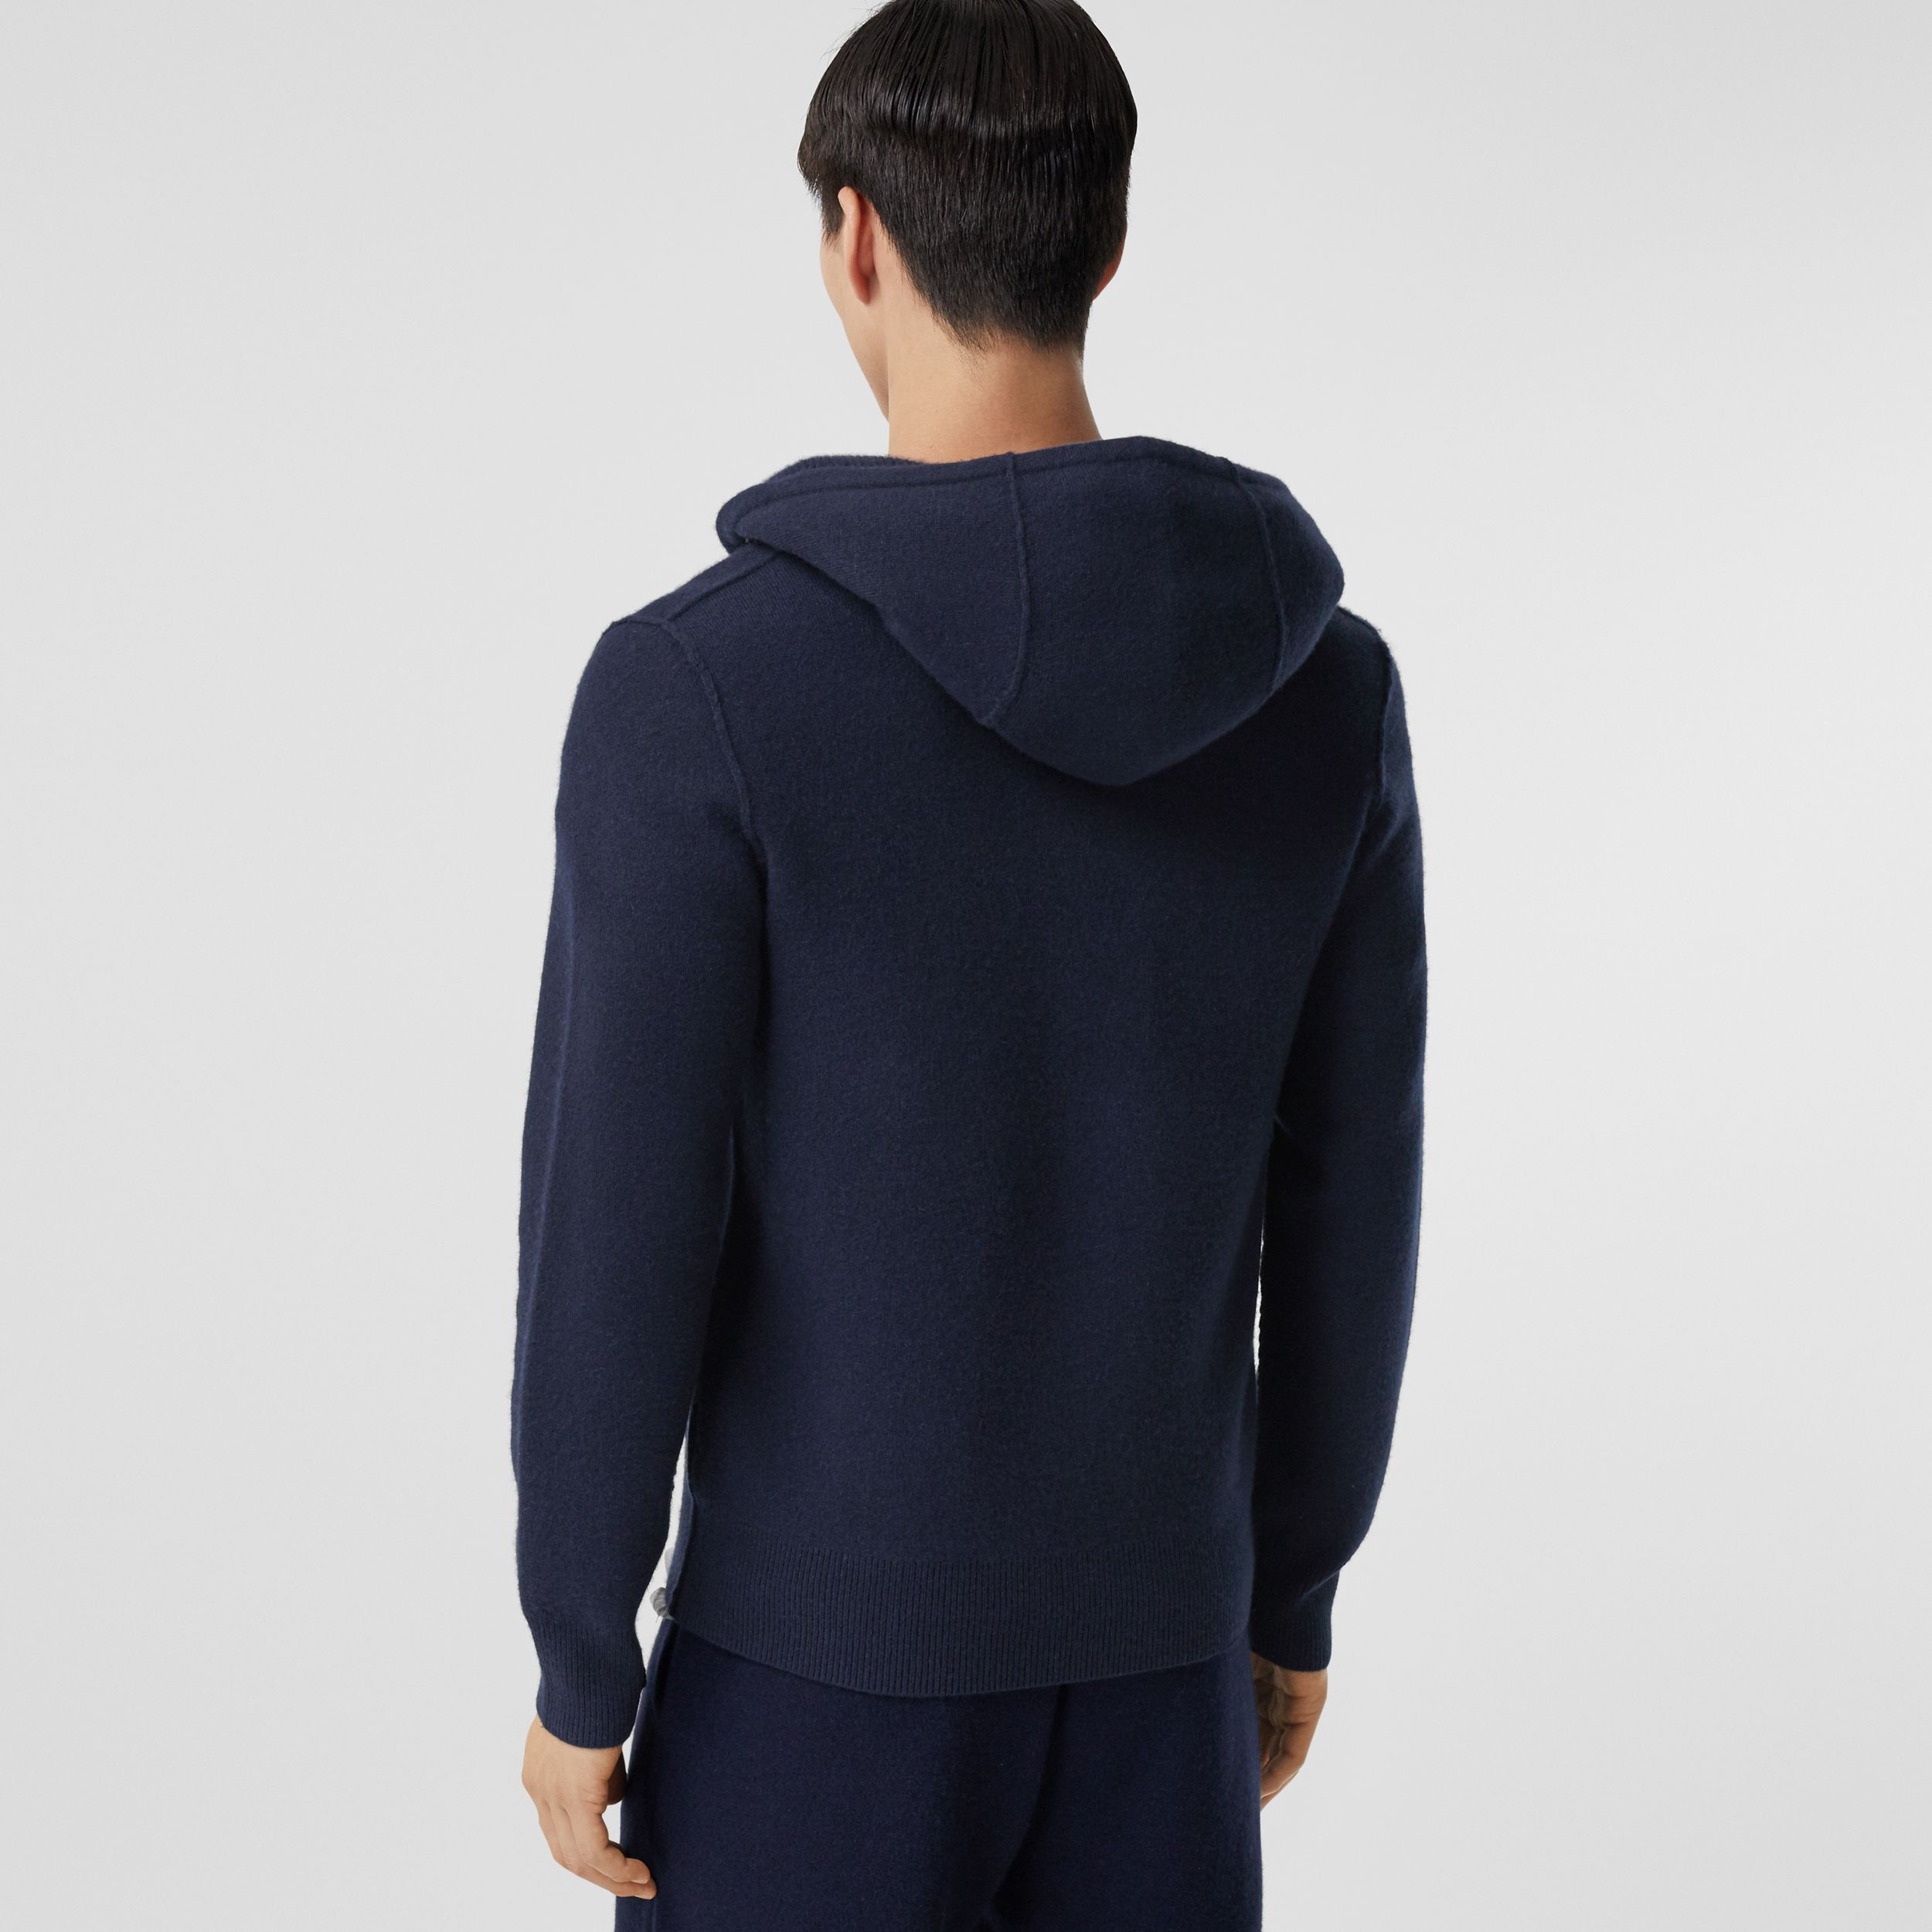 Monogram Motif Cashmere Blend Hooded Top in Navy - Men | Burberry - 3